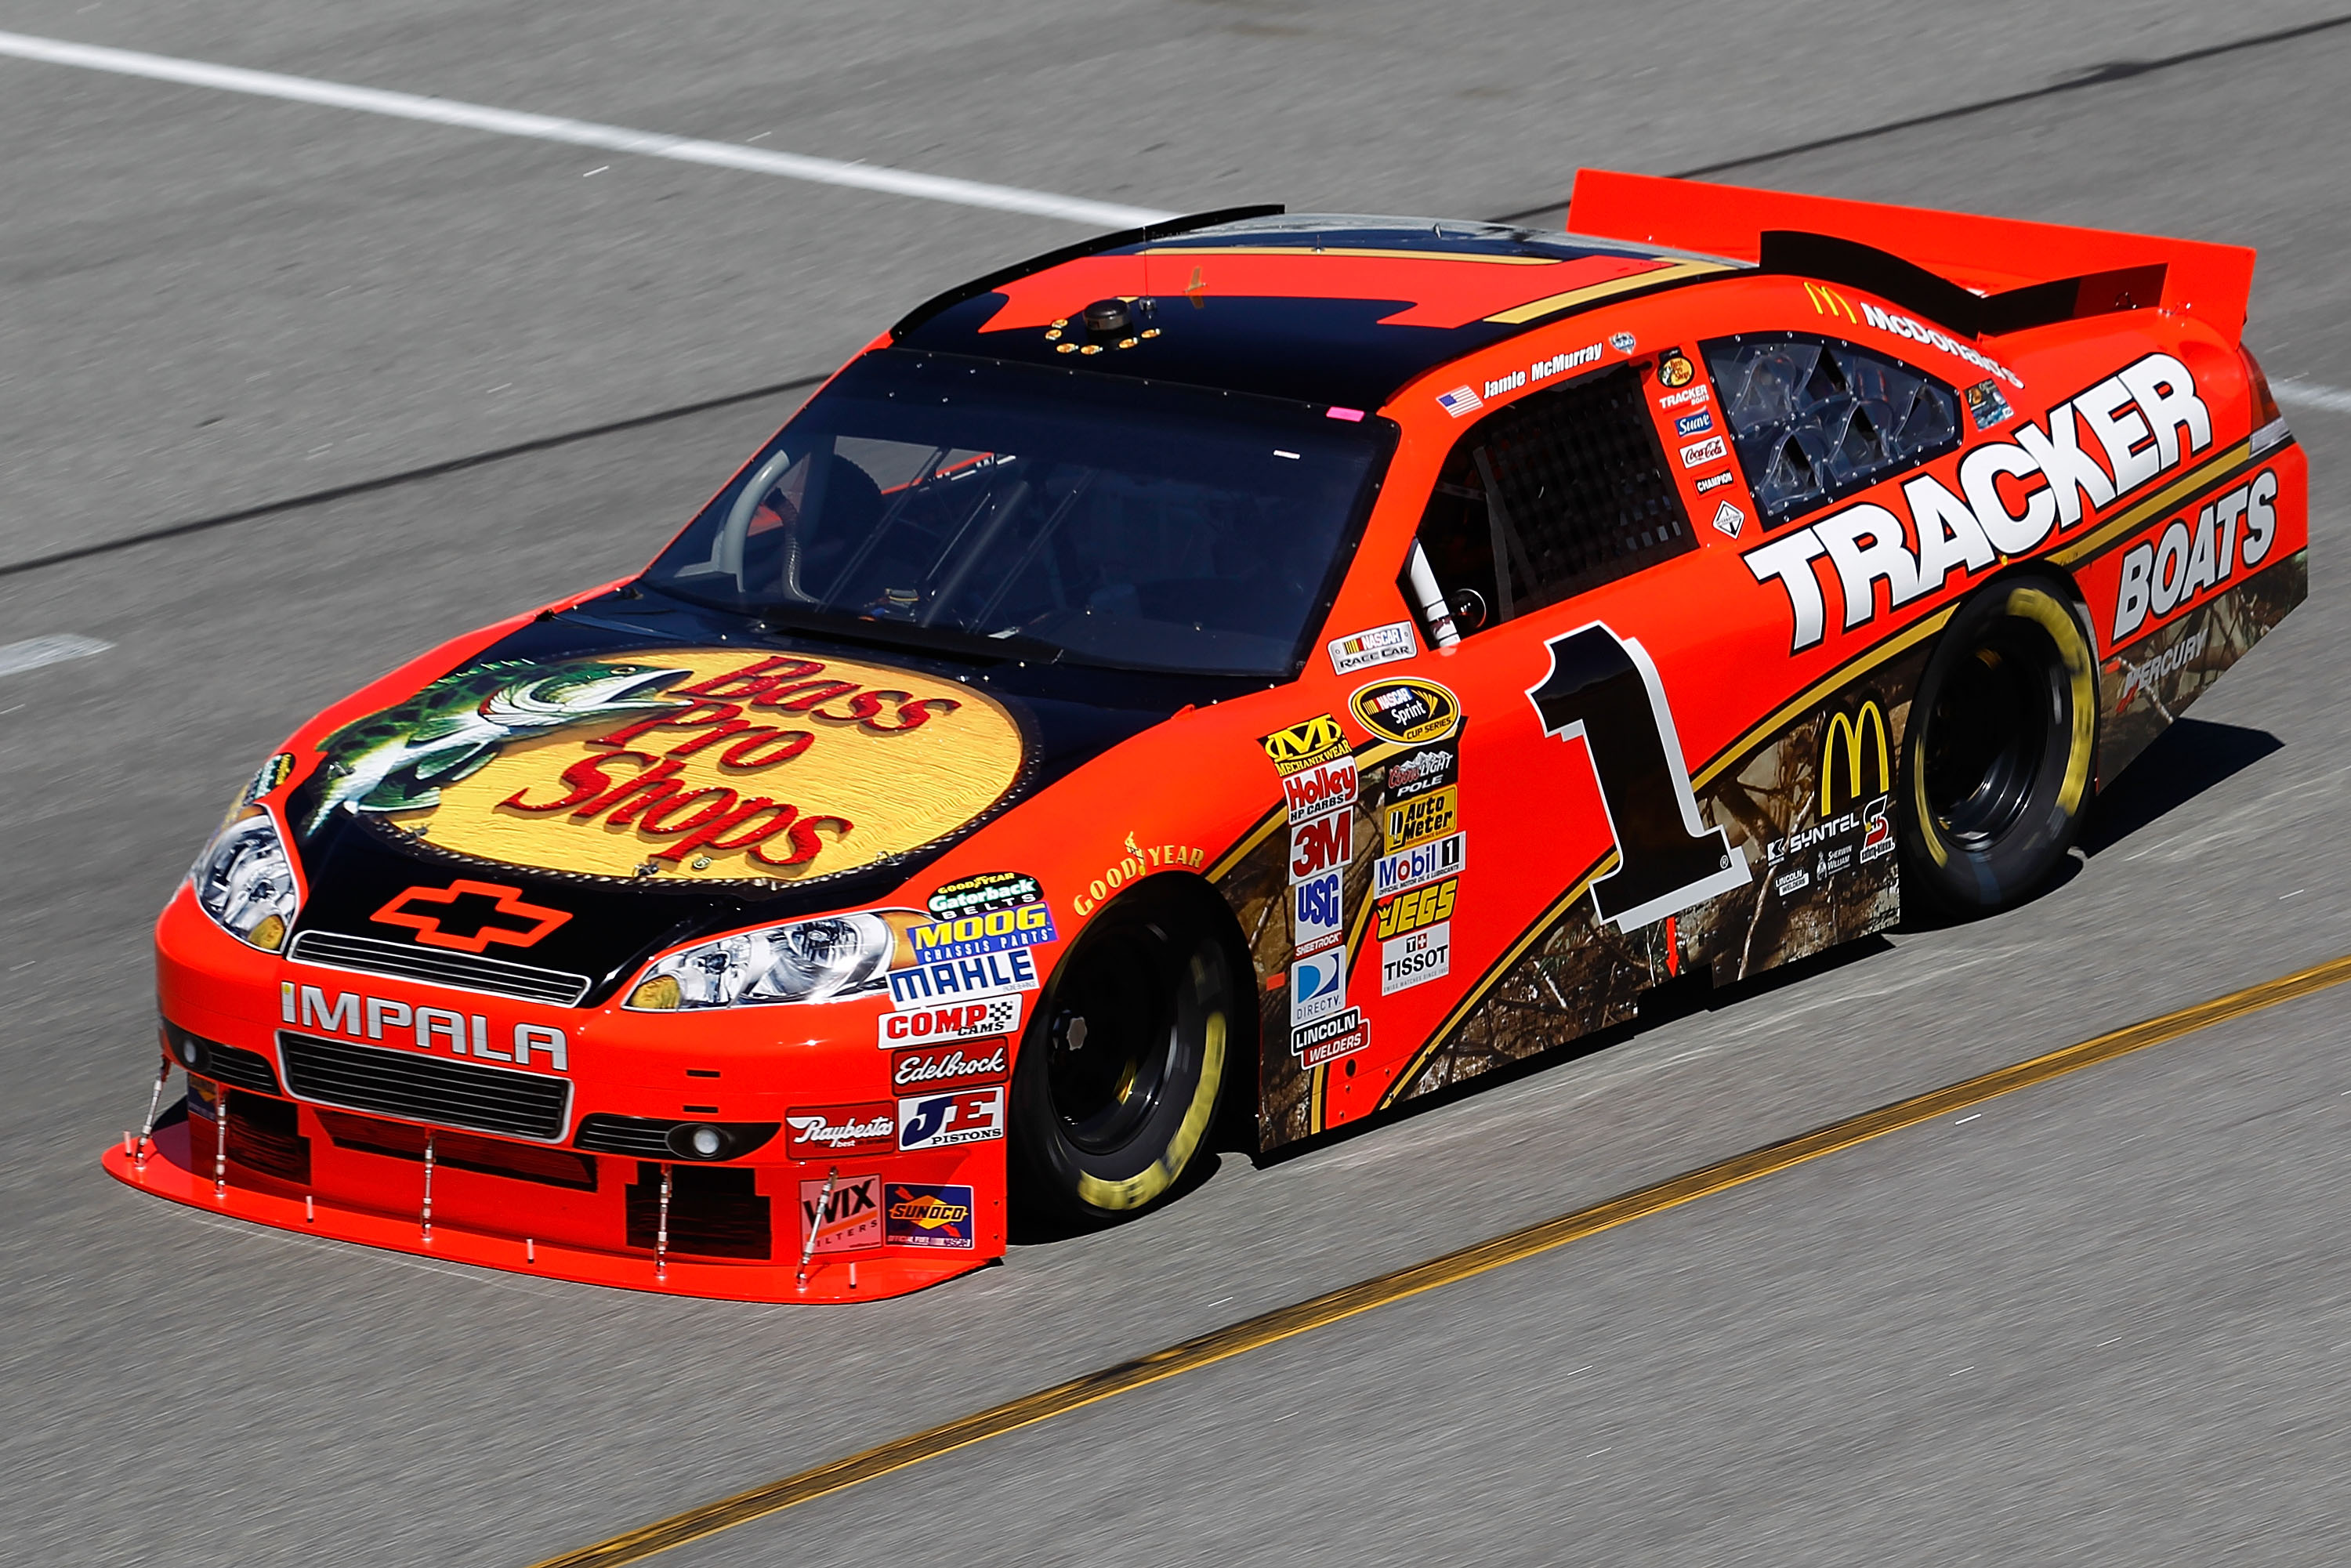 RICHMOND, VA - SEPTEMBER 10:  Jamie McMurray drives the #1 Bass Pro Shops/Tracker Chevrolet during practice for the NASCAR Sprint Cup Series Air Guard 400 at Richmond International Raceway on September 10, 2010 in Richmond, Virginia.  (Photo by Todd Warsh